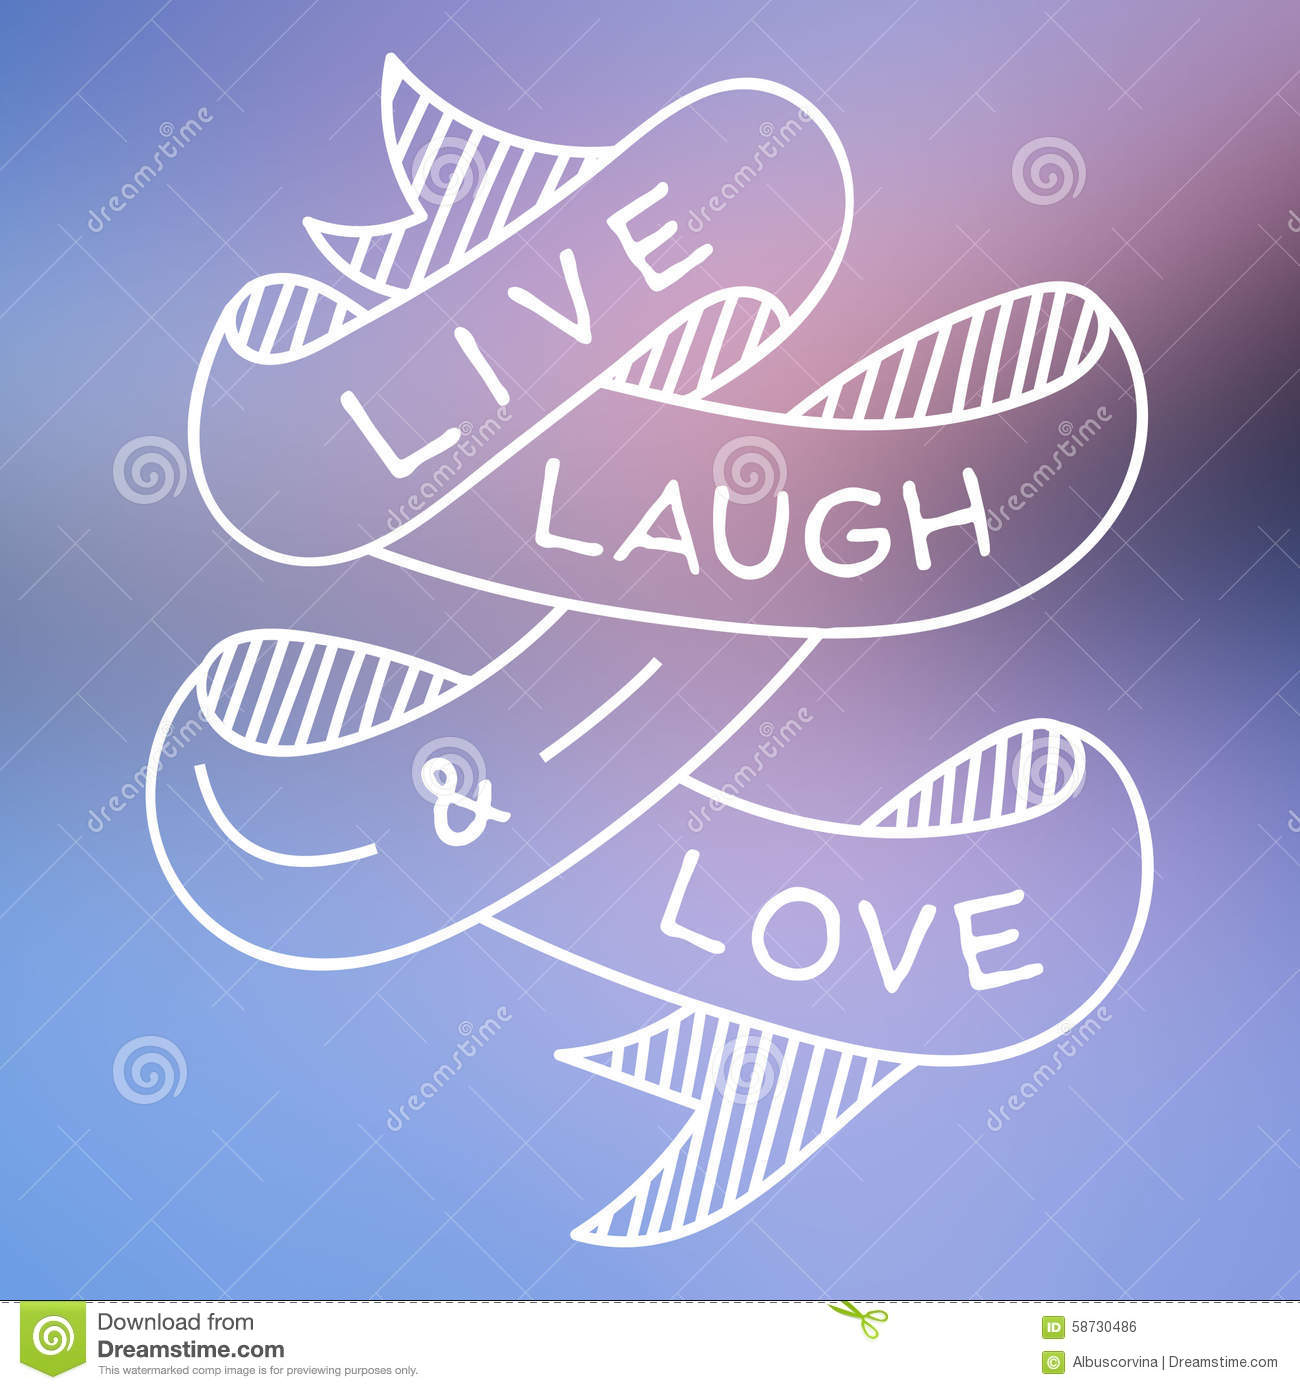 Us Stock Live Quote: Live Laugh And Love Stock Illustration. Image Of Vector